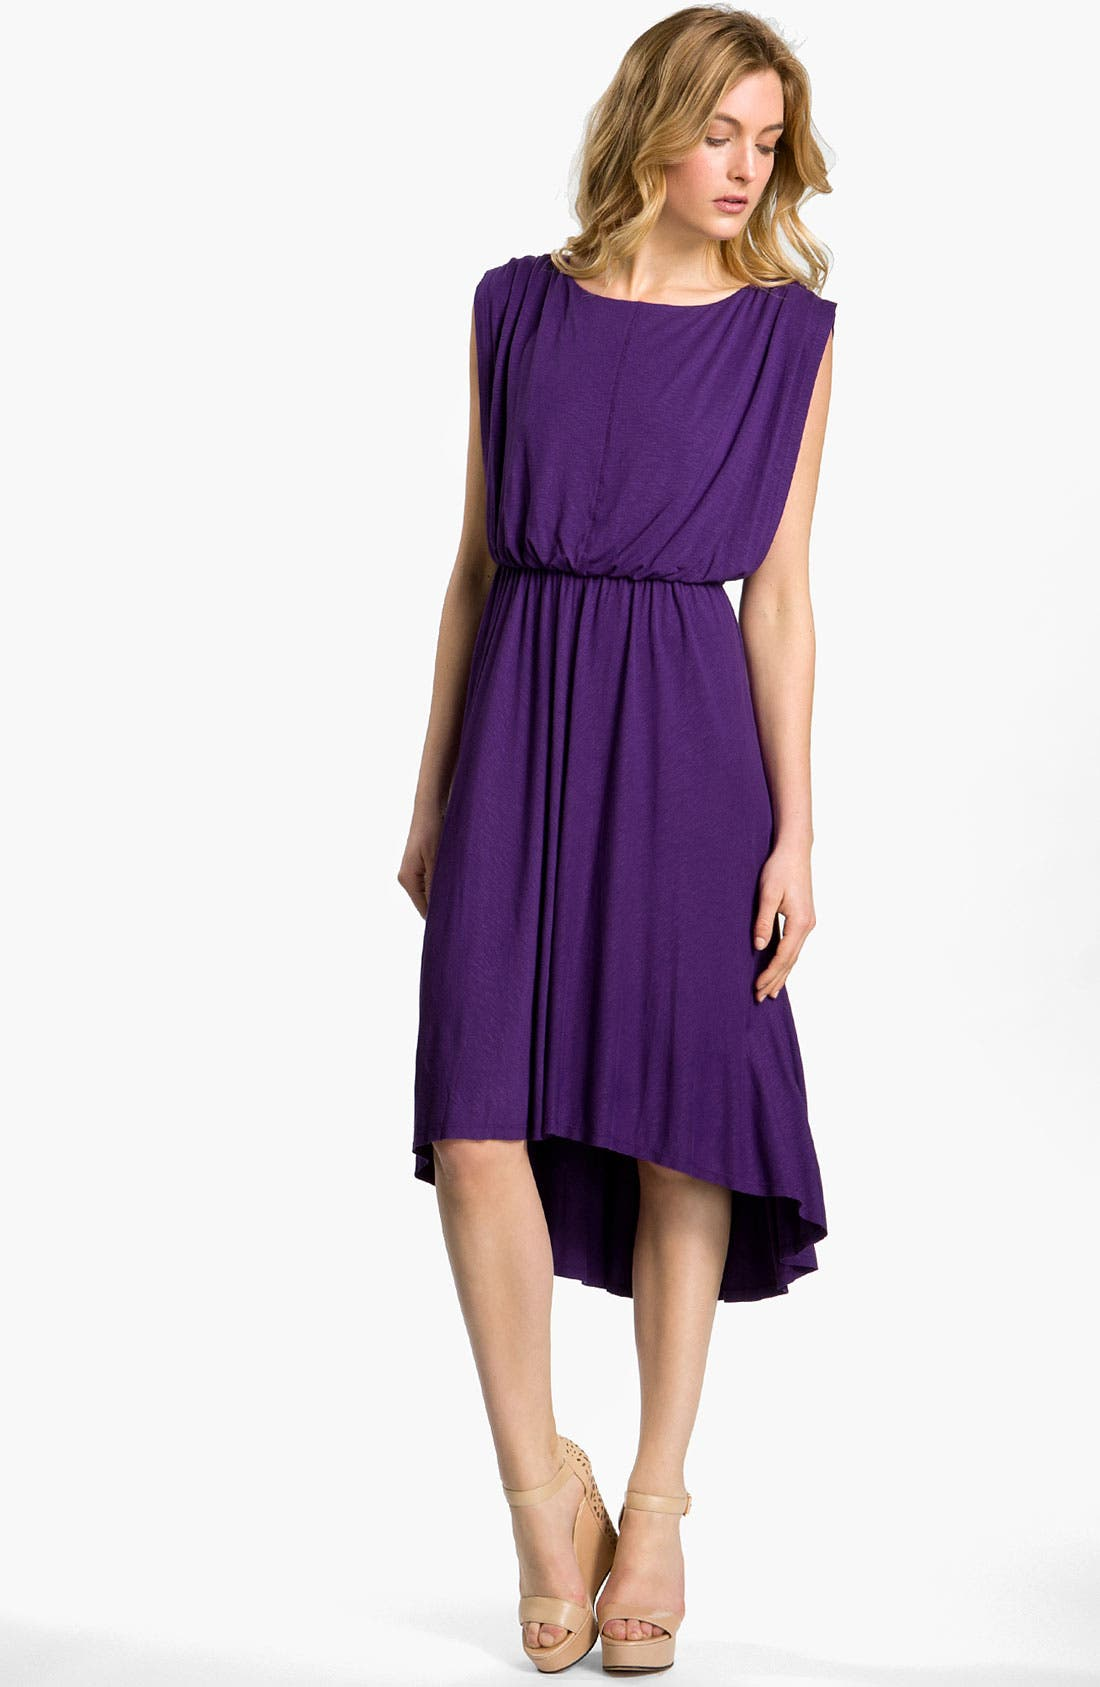 Alternate Image 1 Selected - Vince Camuto Blouson Jersey Dress